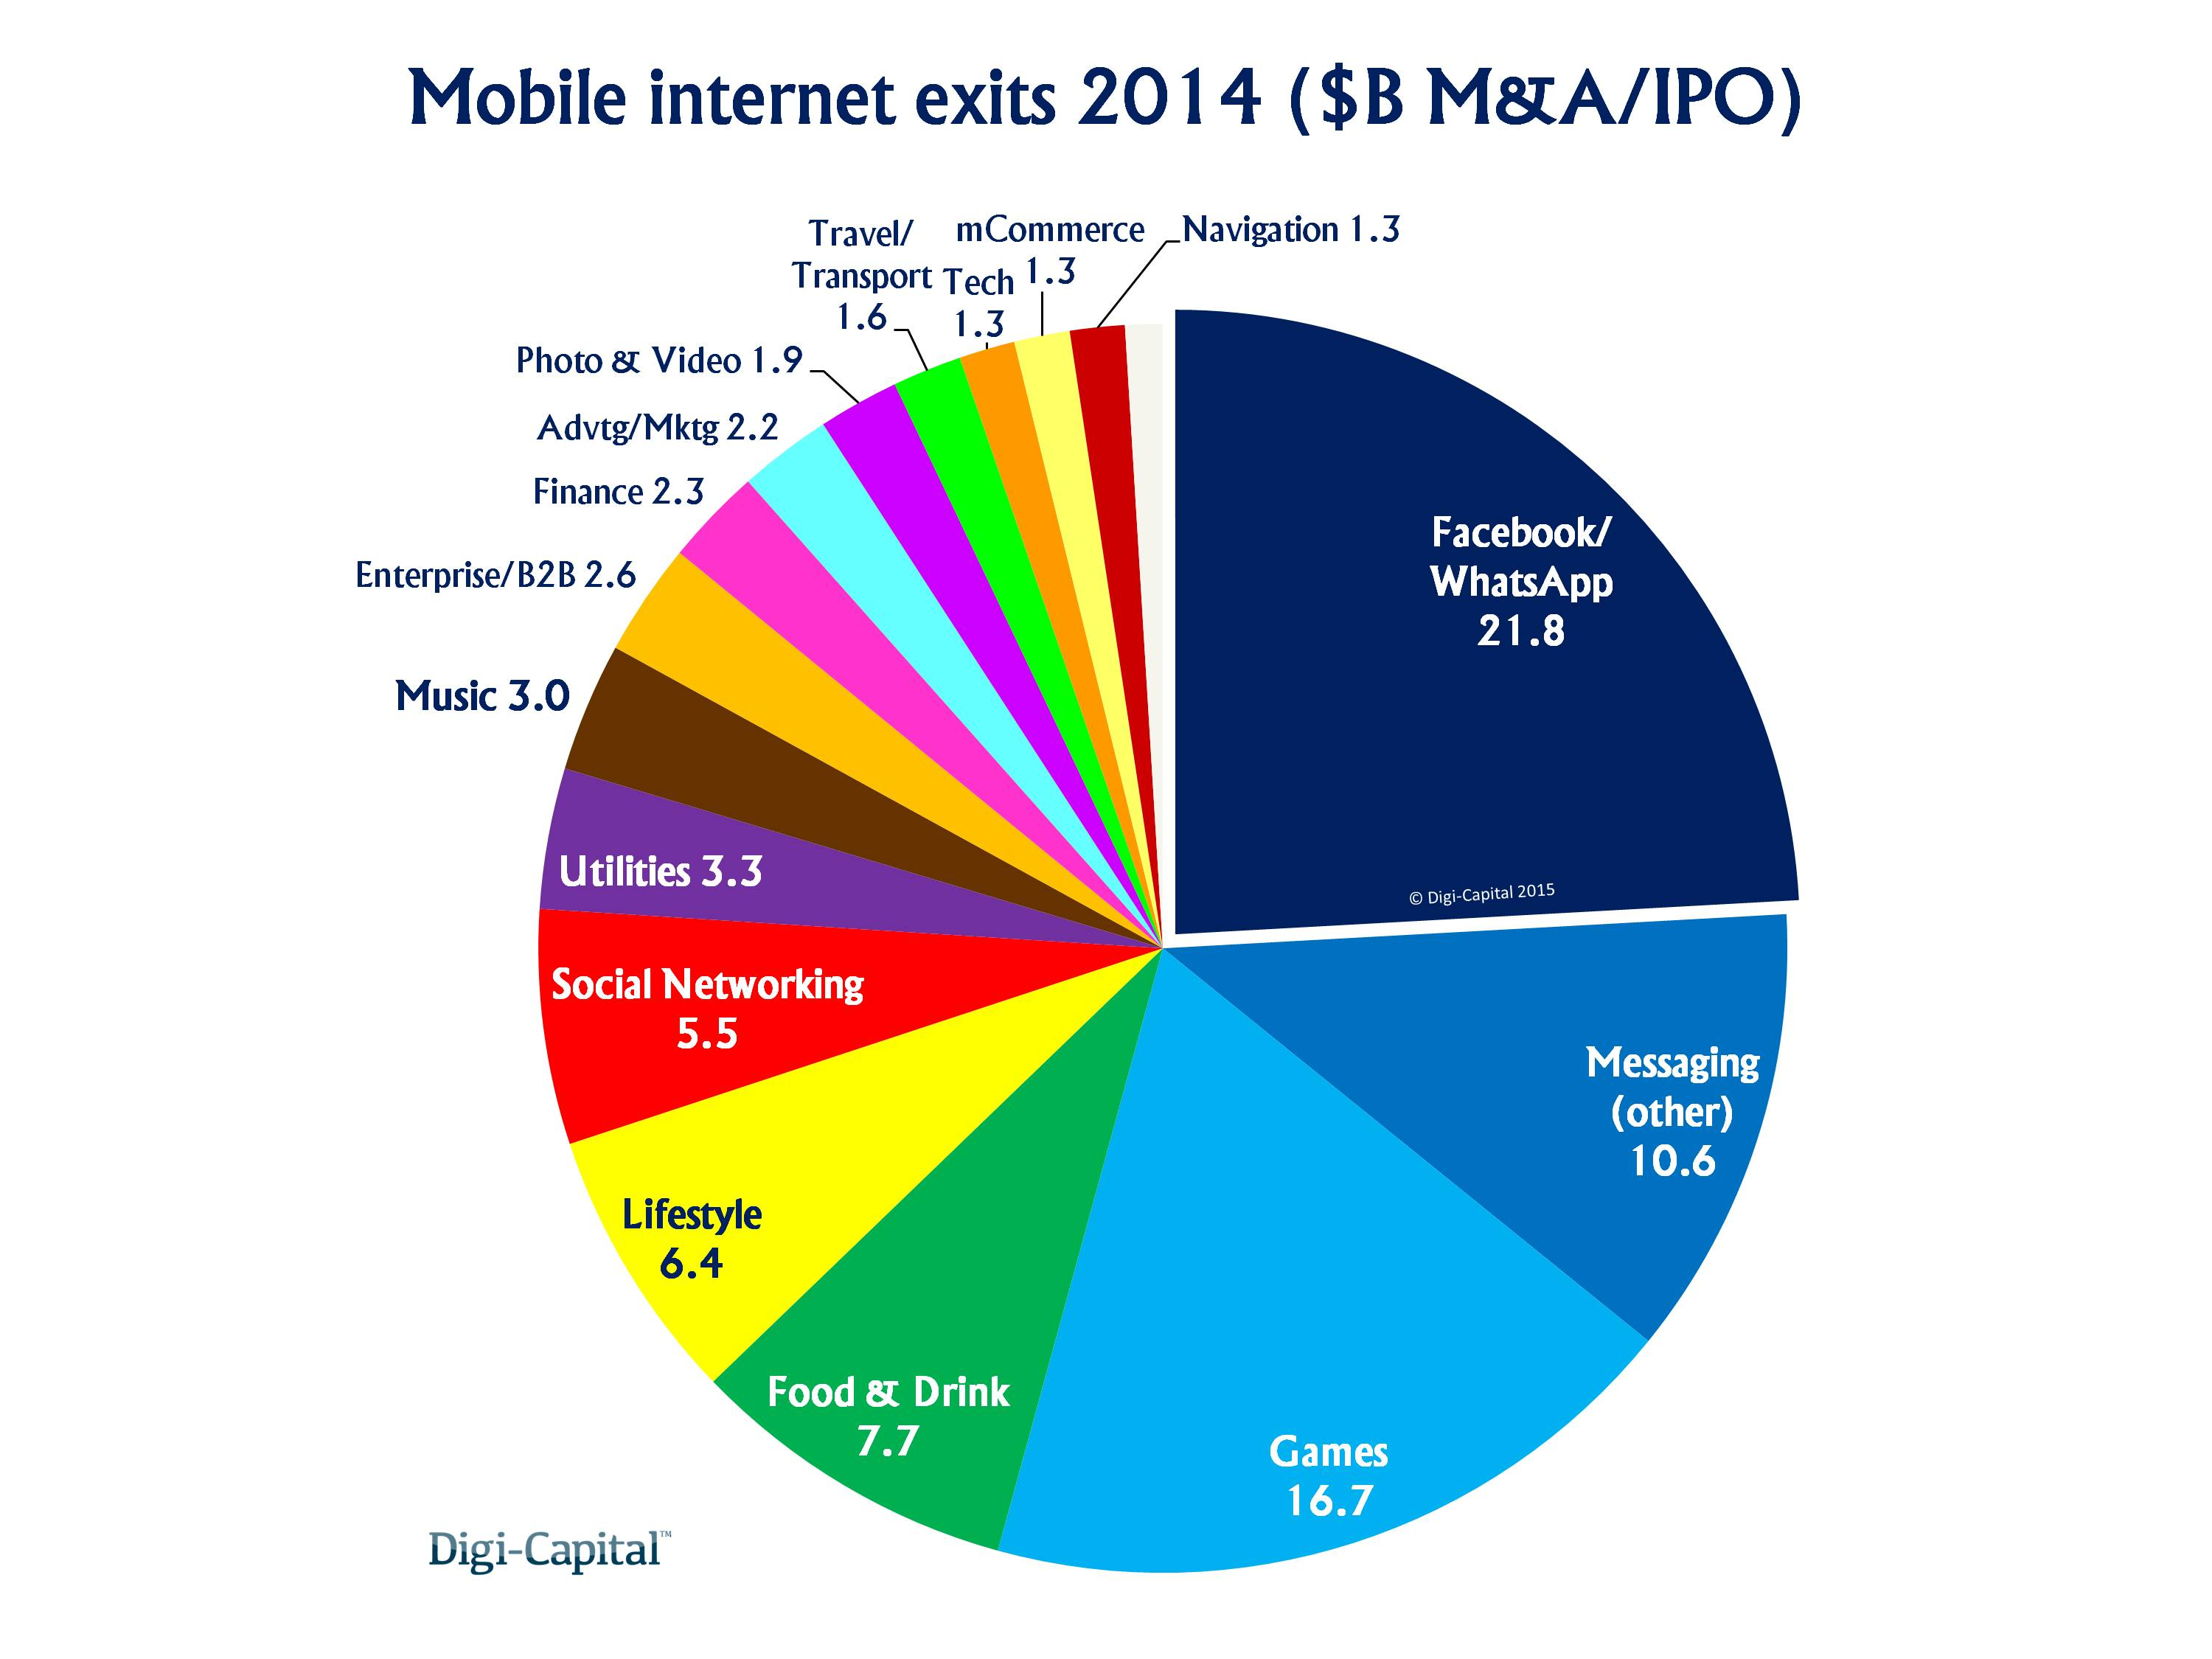 Mobile internet sector exits